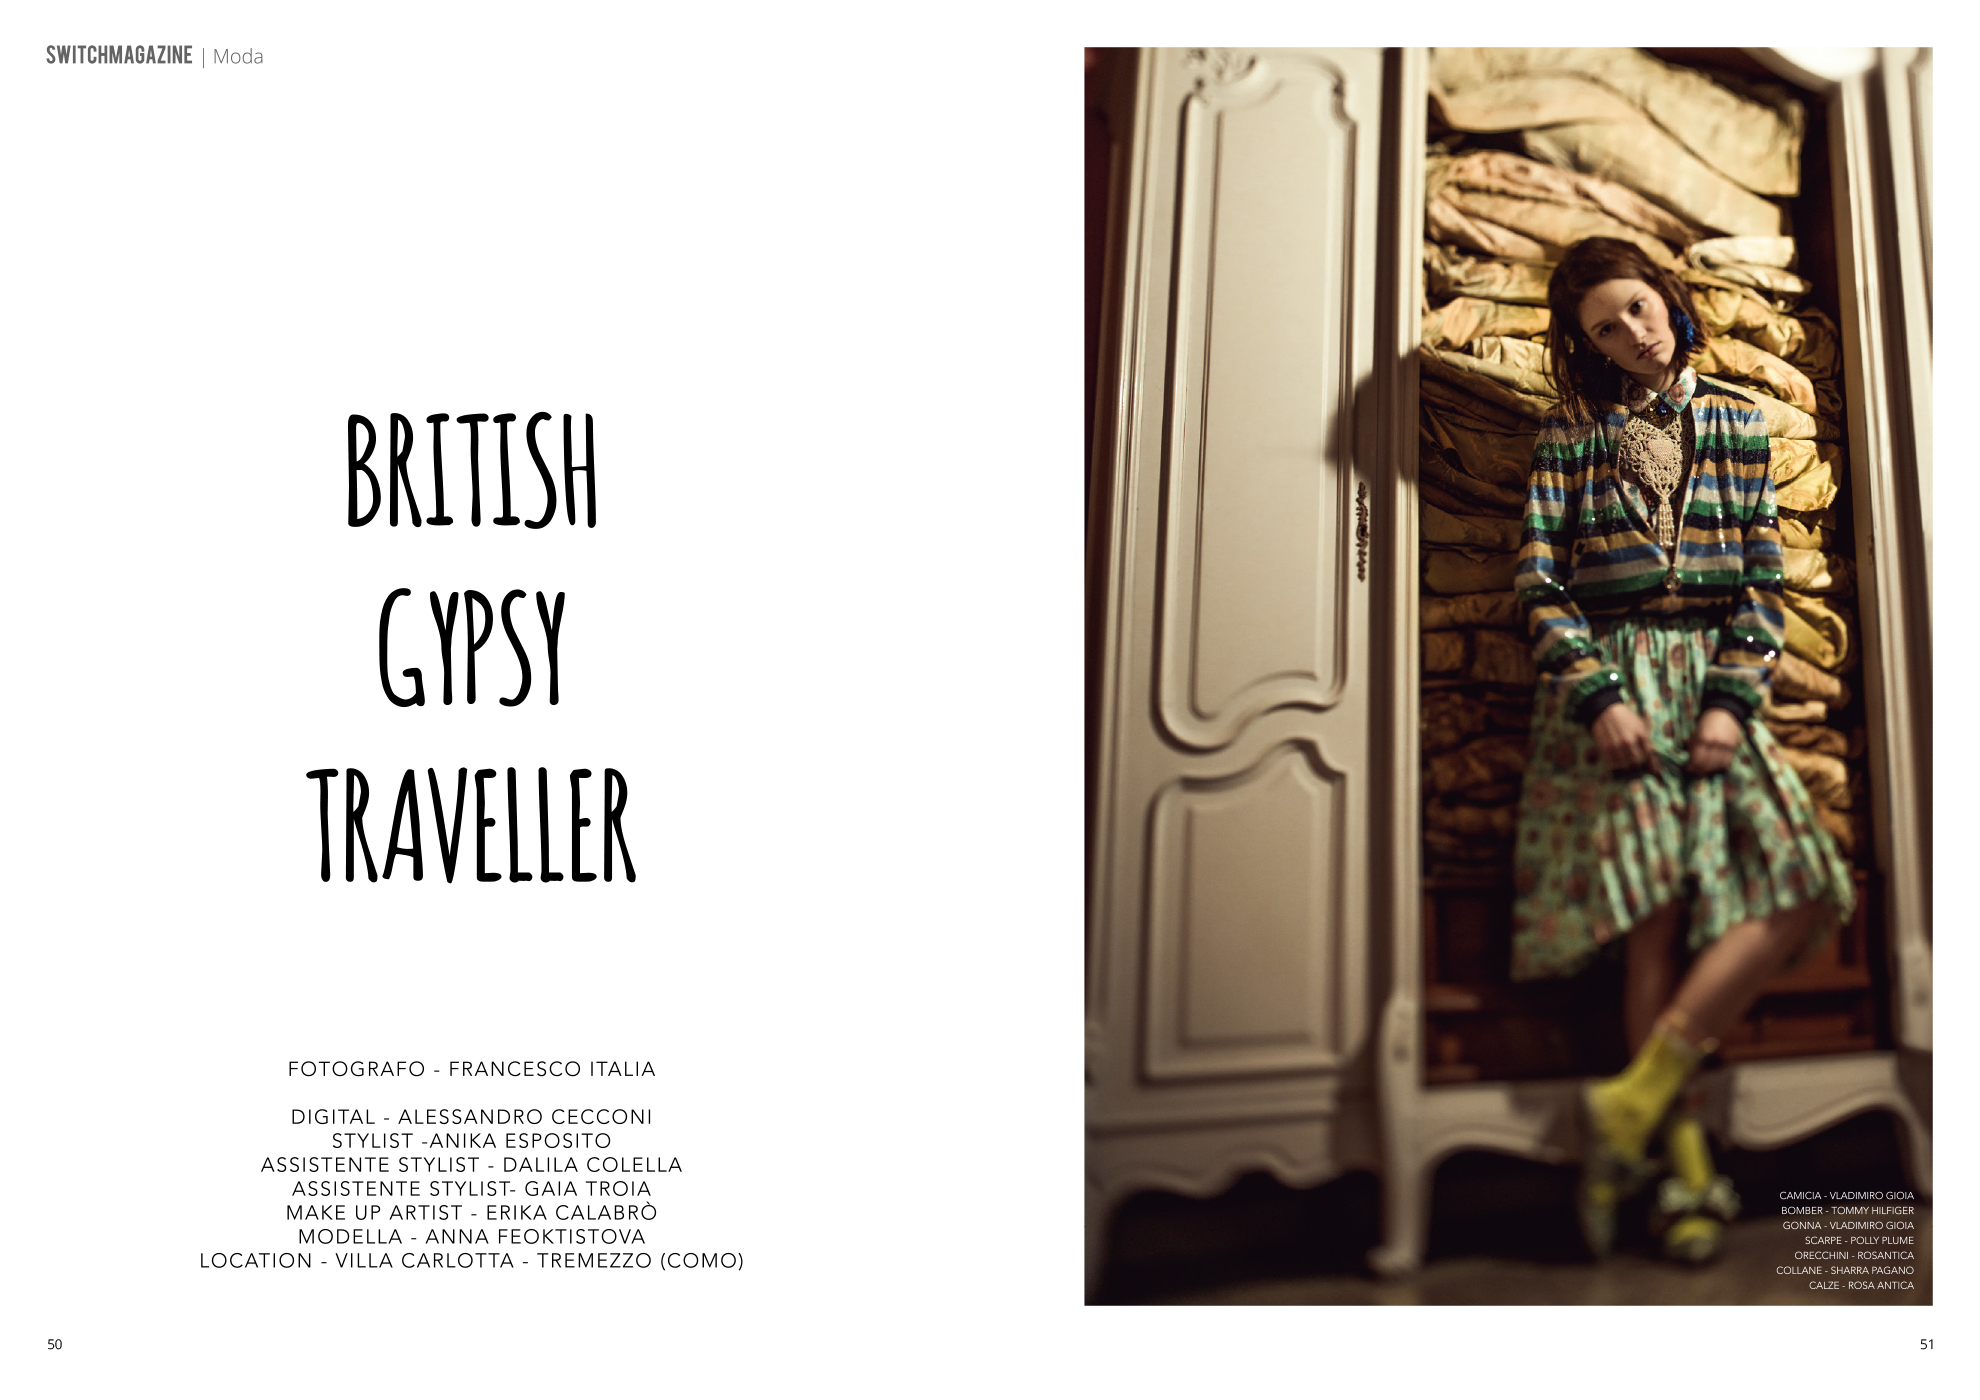 British Gypsy Traveller